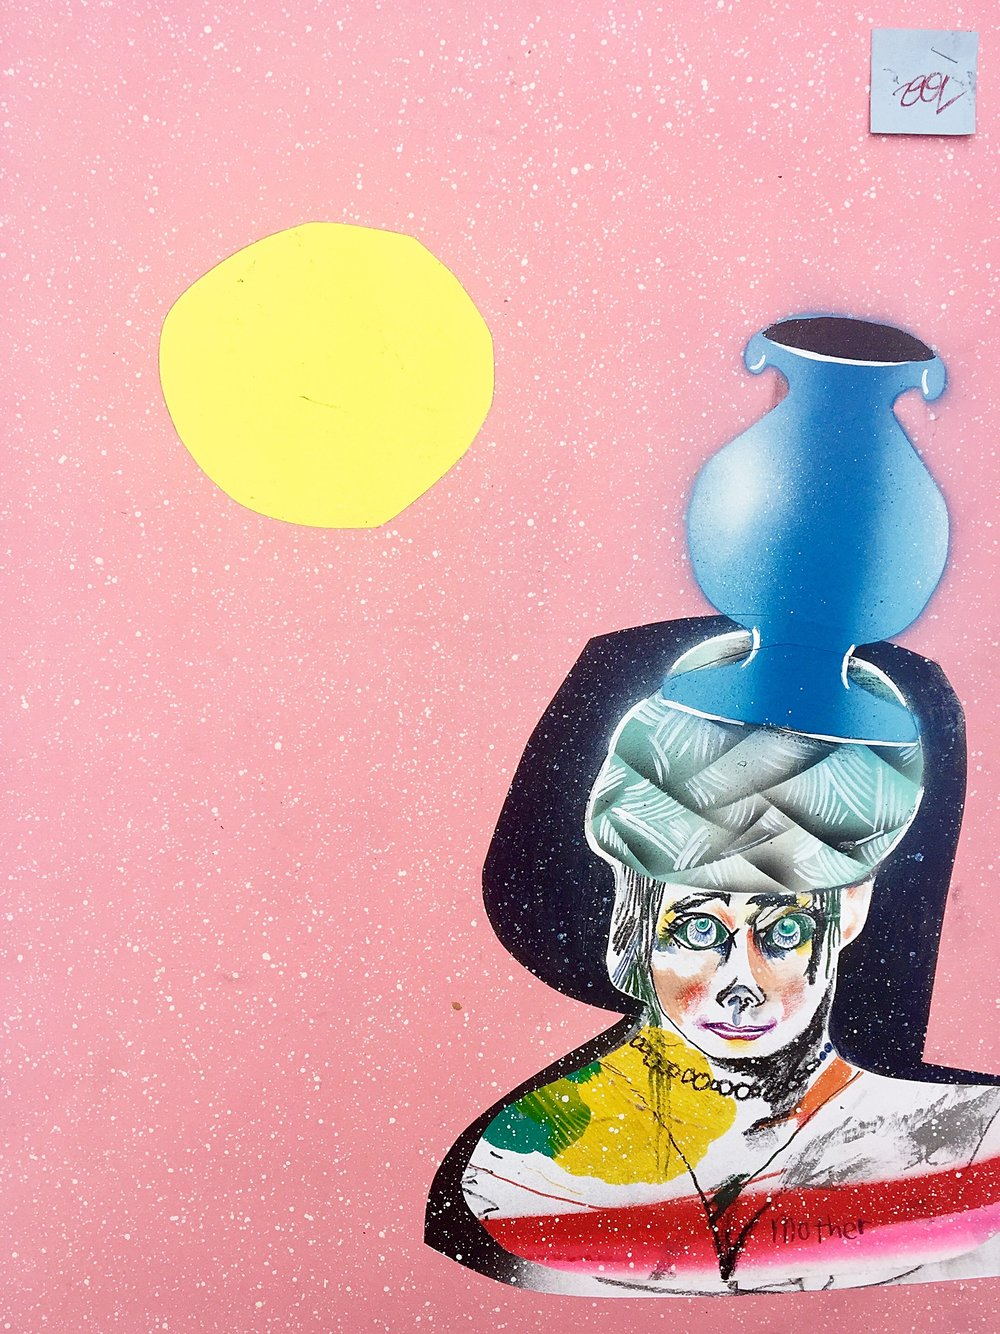 Untitled   (Blue vase on head)  Mixed media on paper  2001  19 x 24 In  $4,500.00